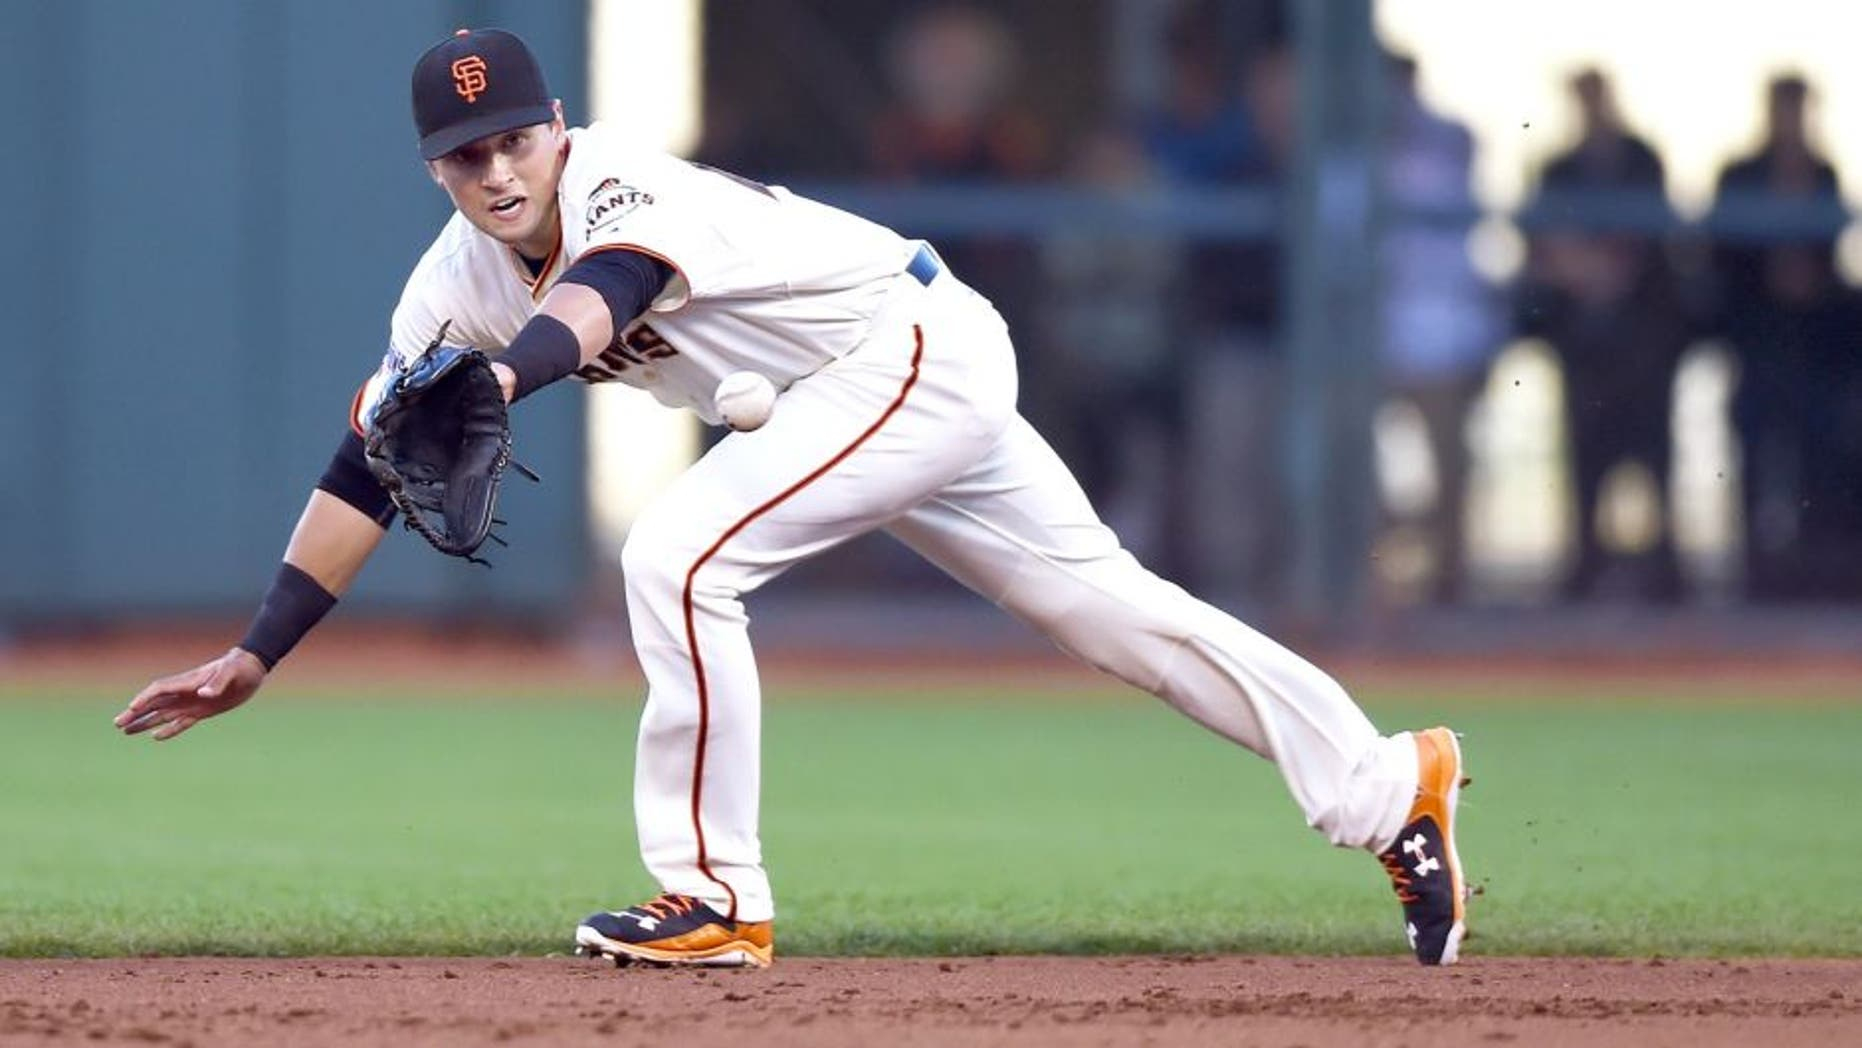 SAN FRANCISCO, CA - JULY 27: Joe Panik #12 of the San Francisco Giants goes up the middle to his backhand to take a hit away from Shane Peterson #35 of the Milwaukee Brewers in the top of the second inning at AT&T Park on July 27, 2015 in San Francisco, California. (Photo by Thearon W. Henderson/Getty Images)